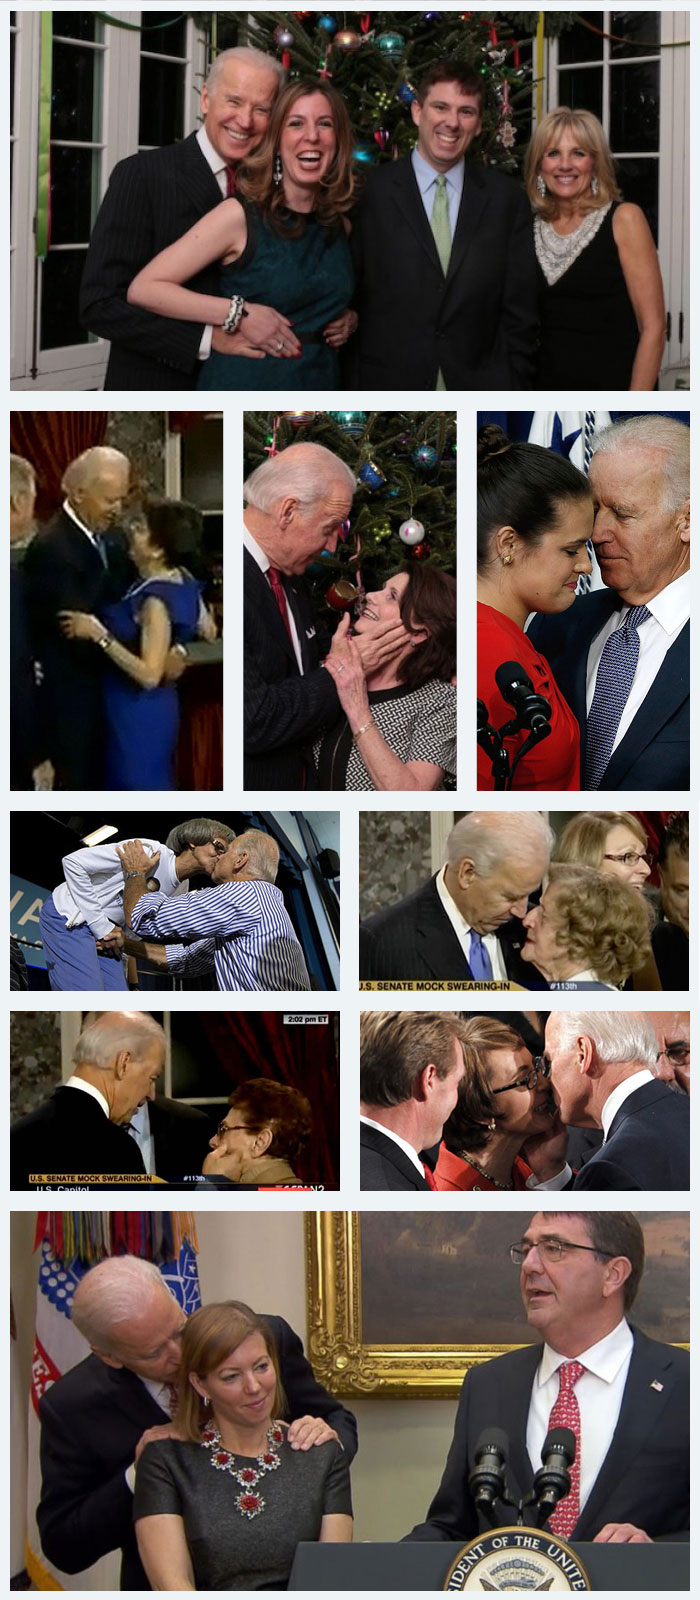 Joe Biden groping women collage